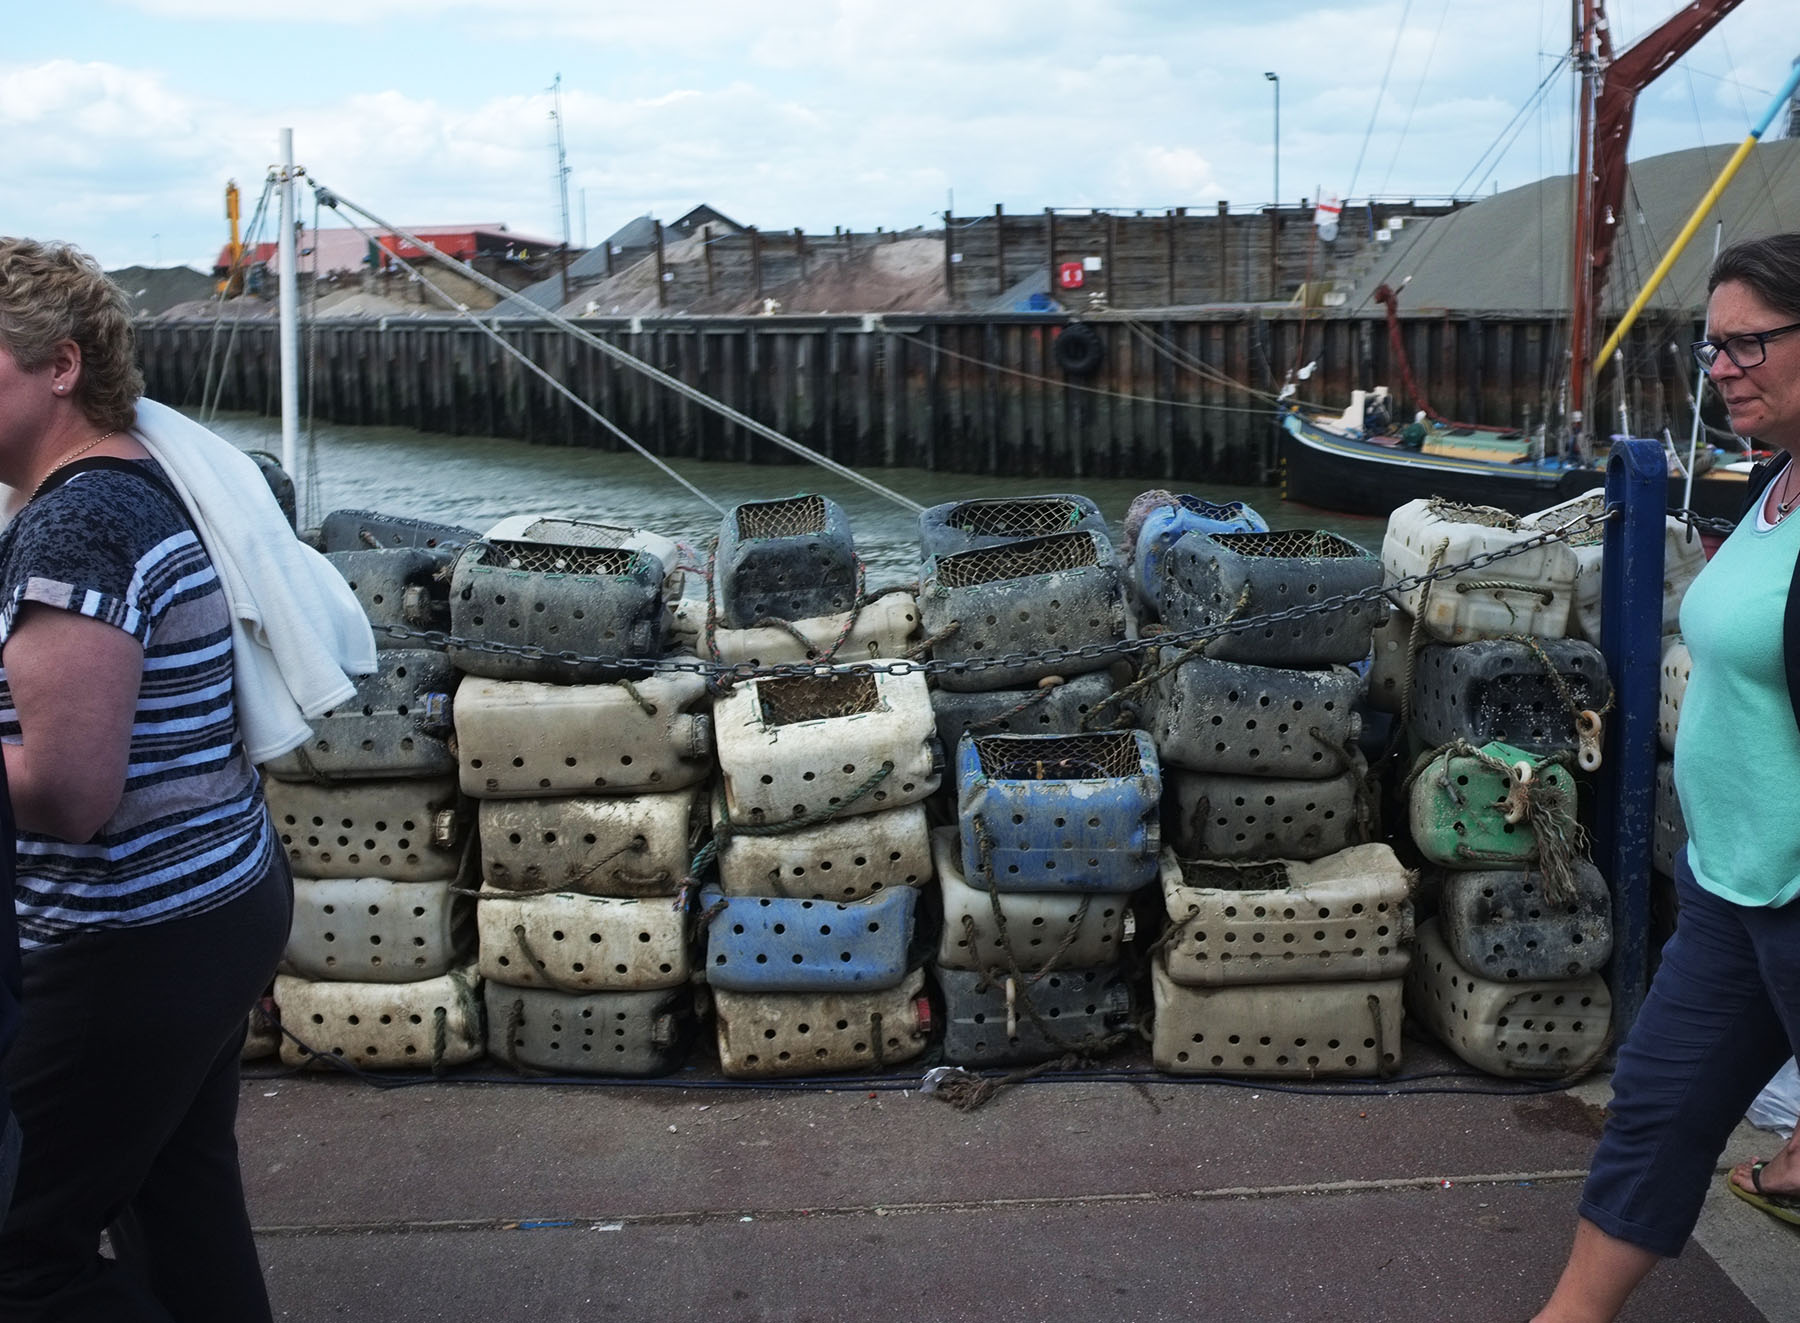 uk-whitstable_12